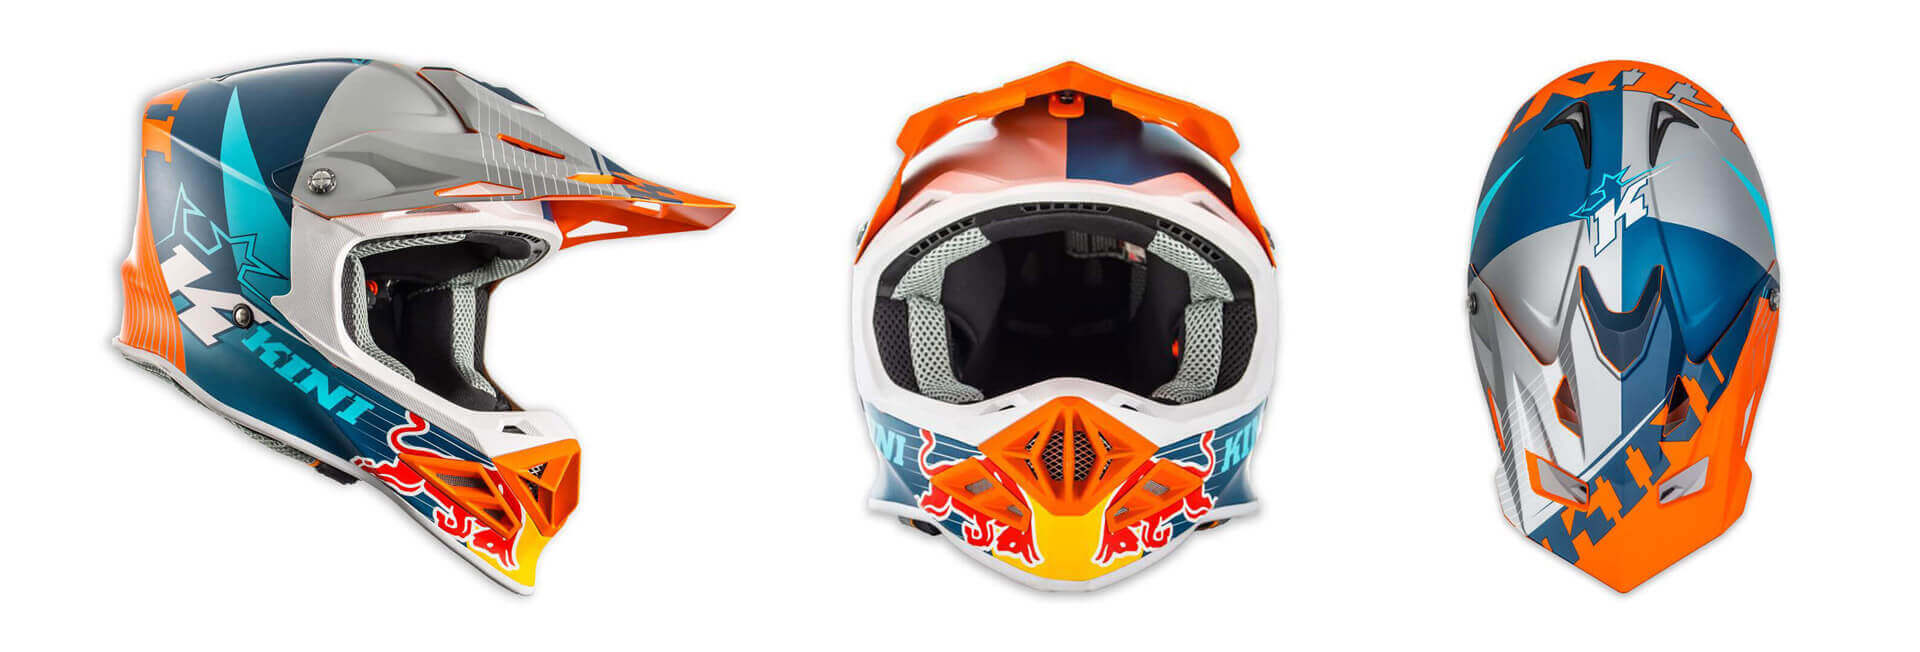 kini-red-bull-crosshelm-competition-helm-ansichten